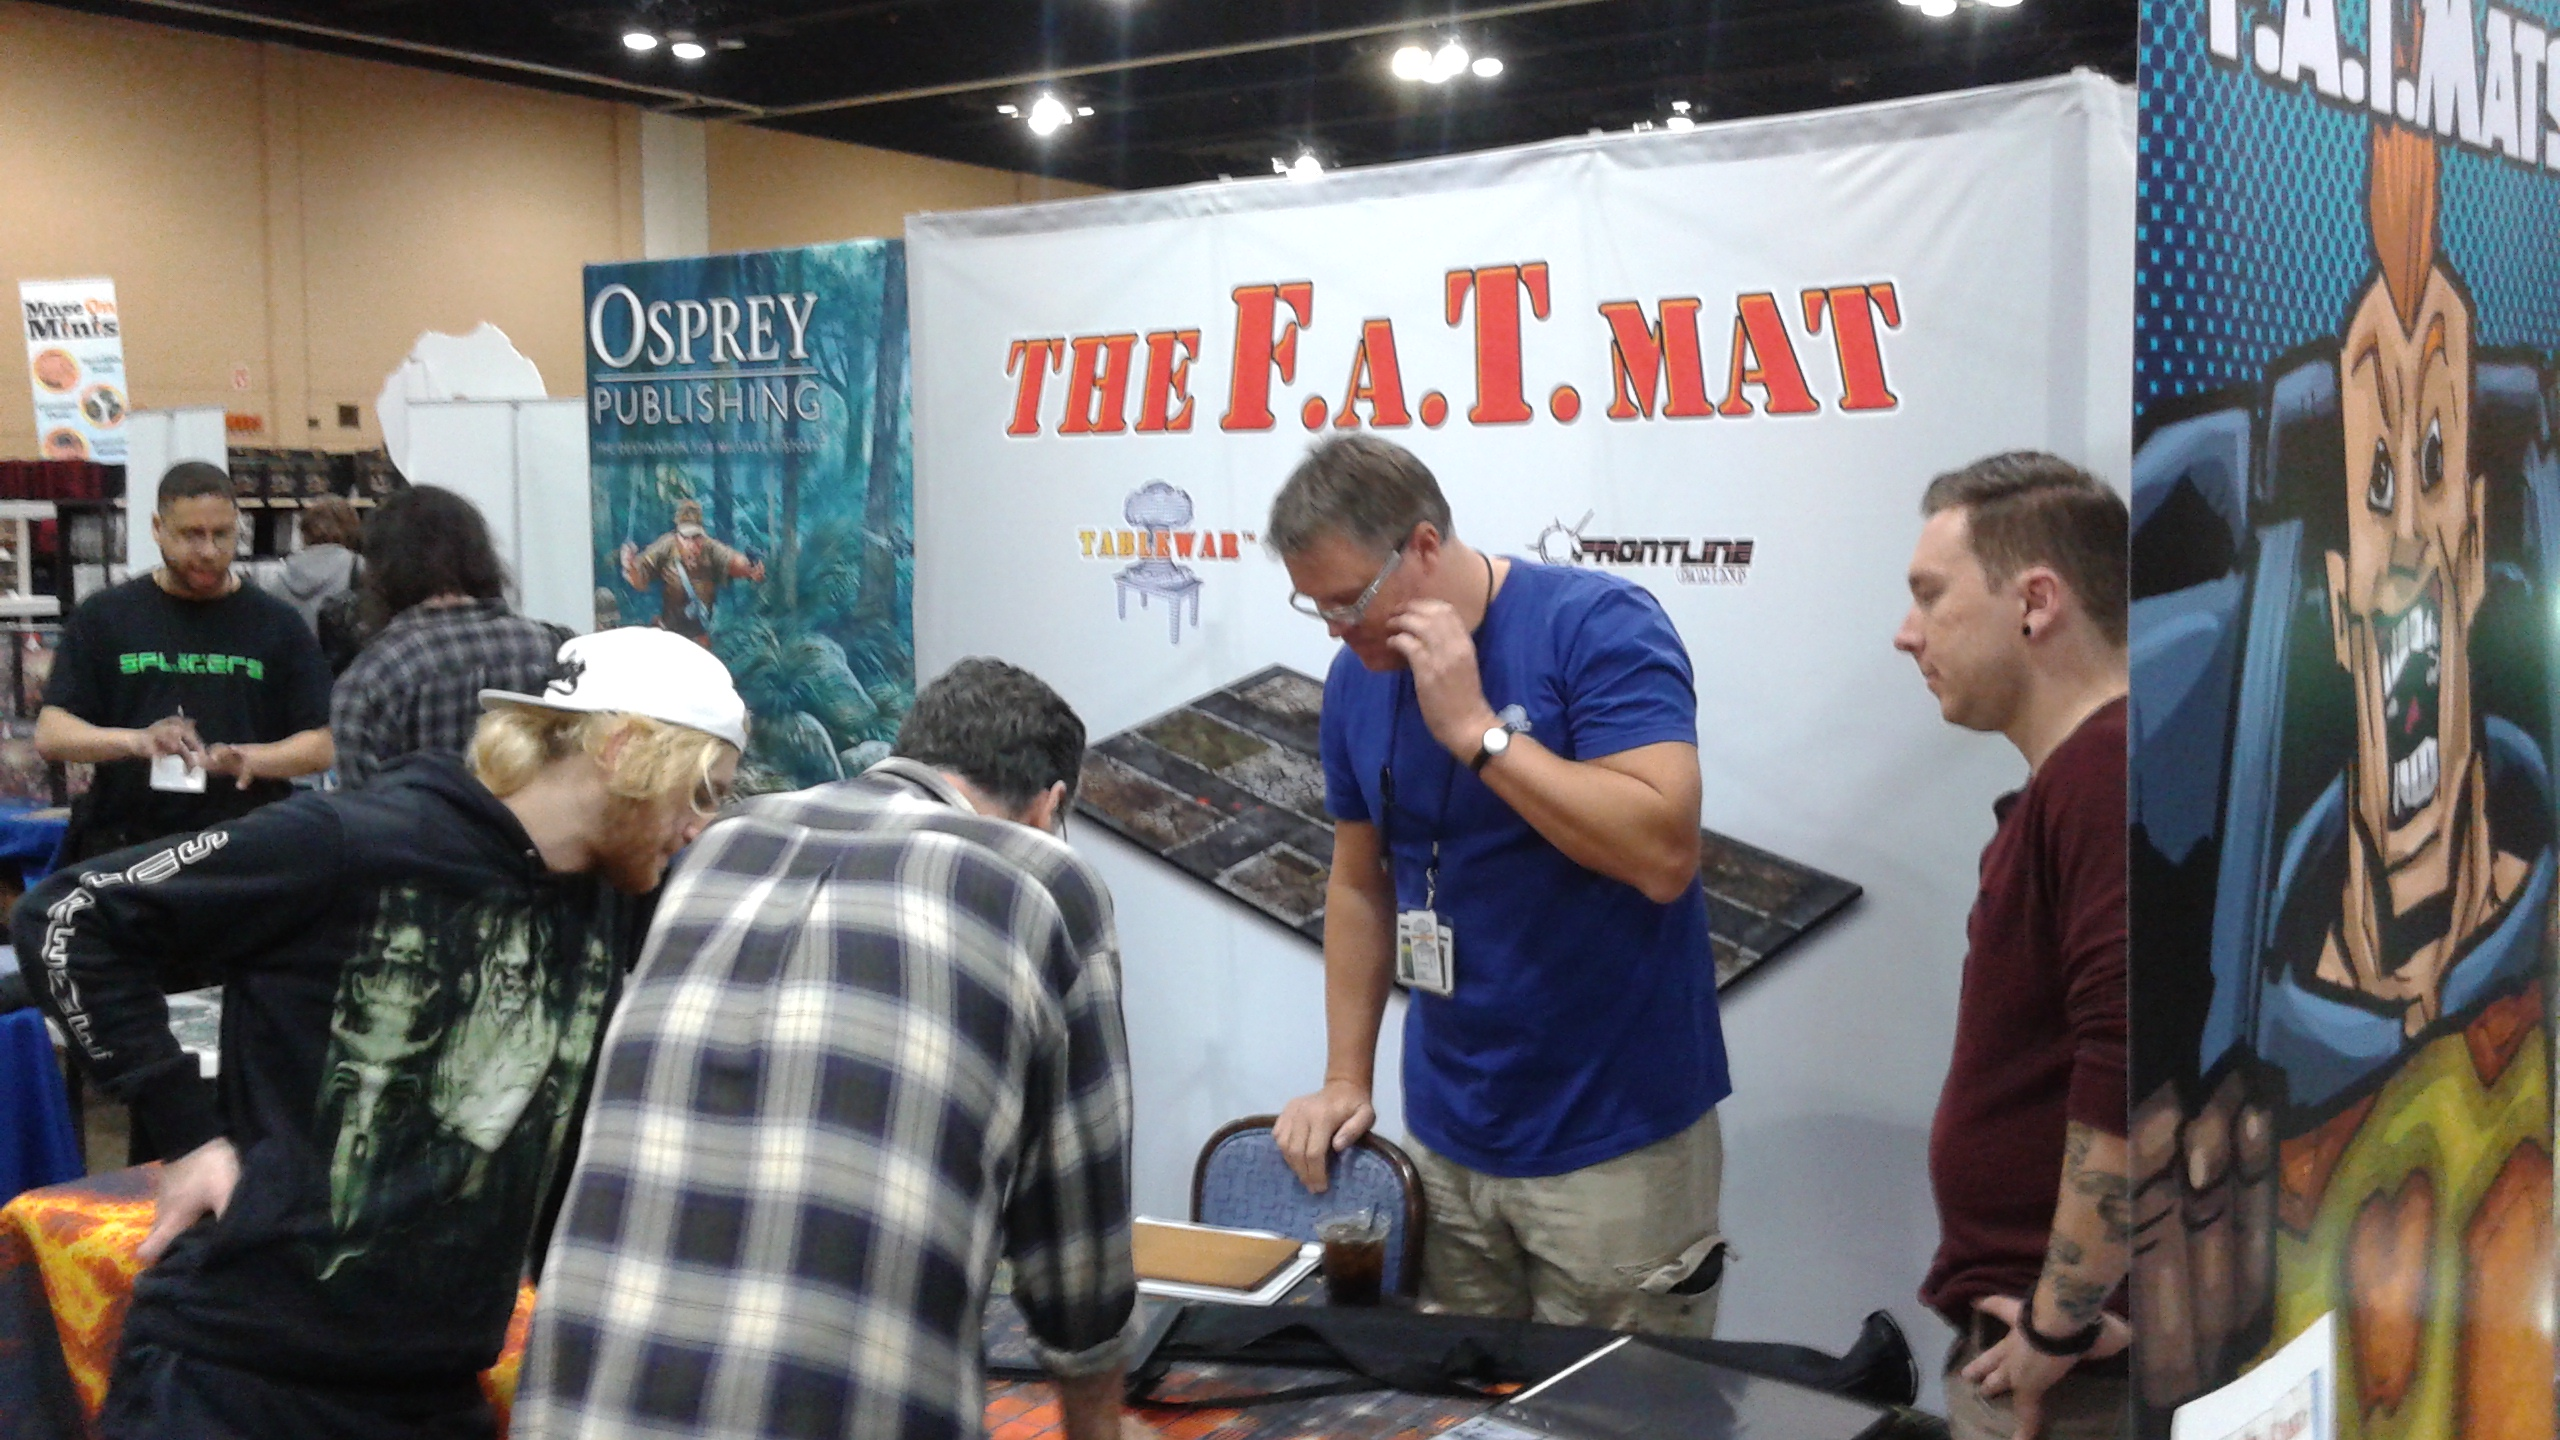 Our Glorious F.A.T. mat booth!